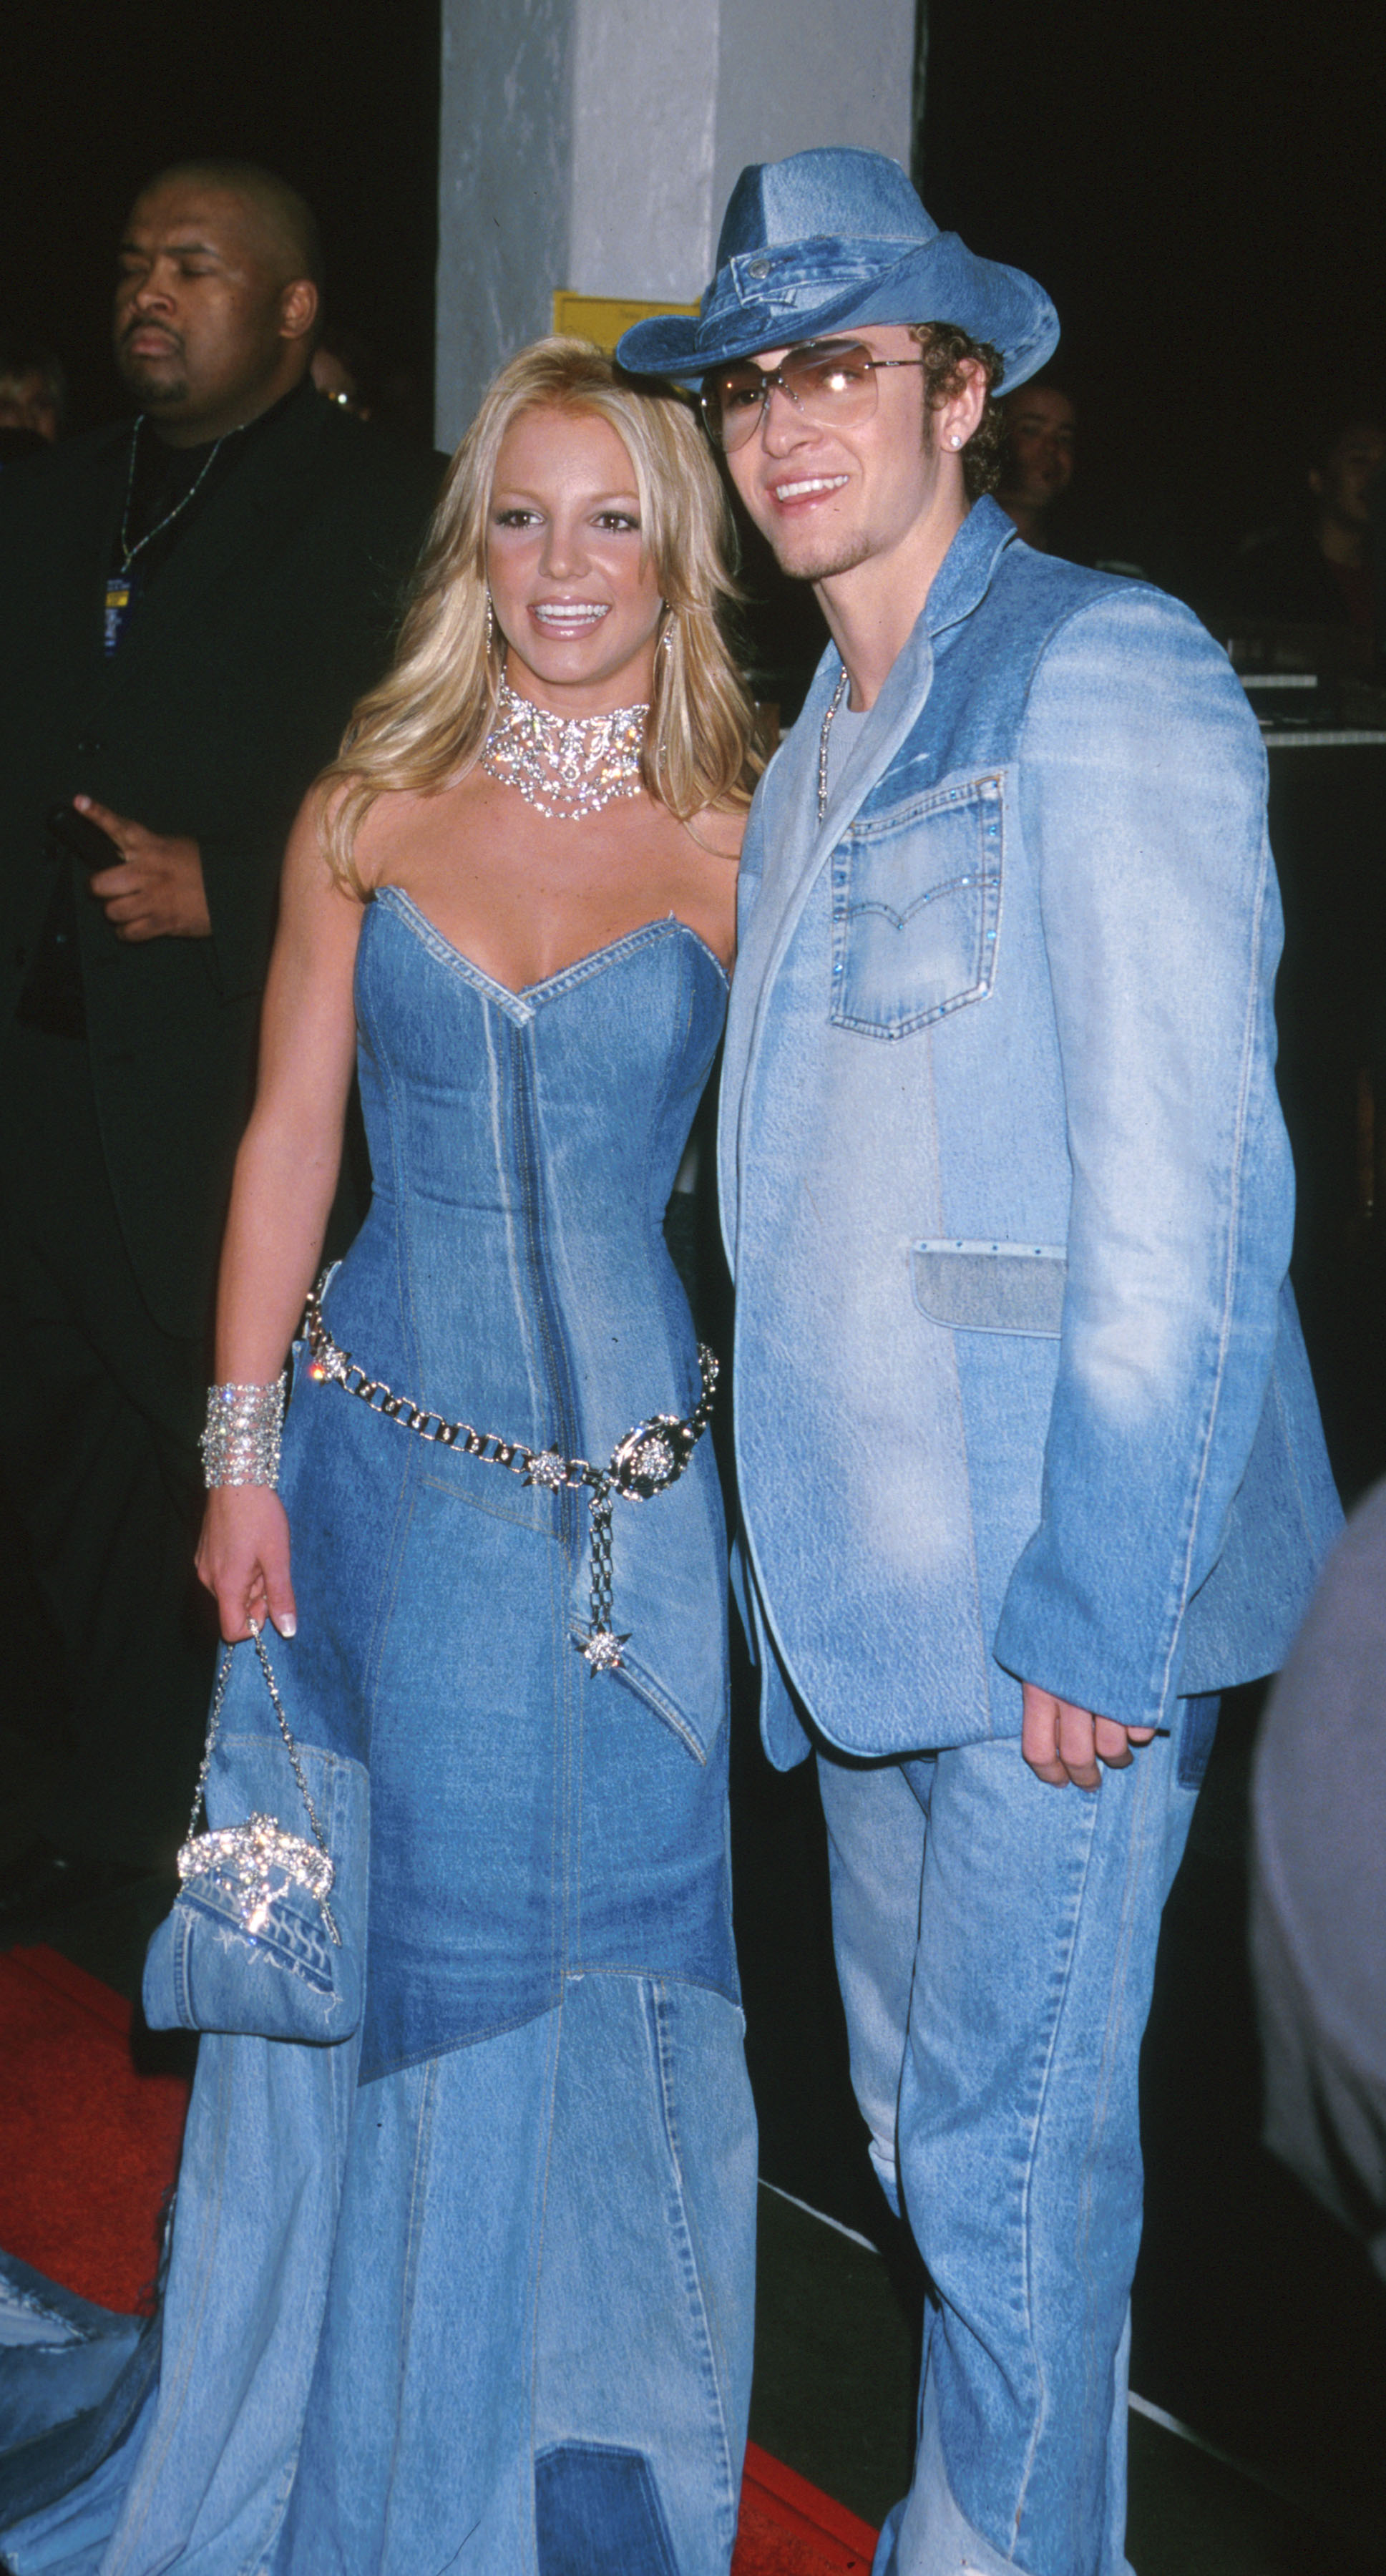 Britney Spears and Justin Timberlake at the 28th Annual American Music Awards in 2001.